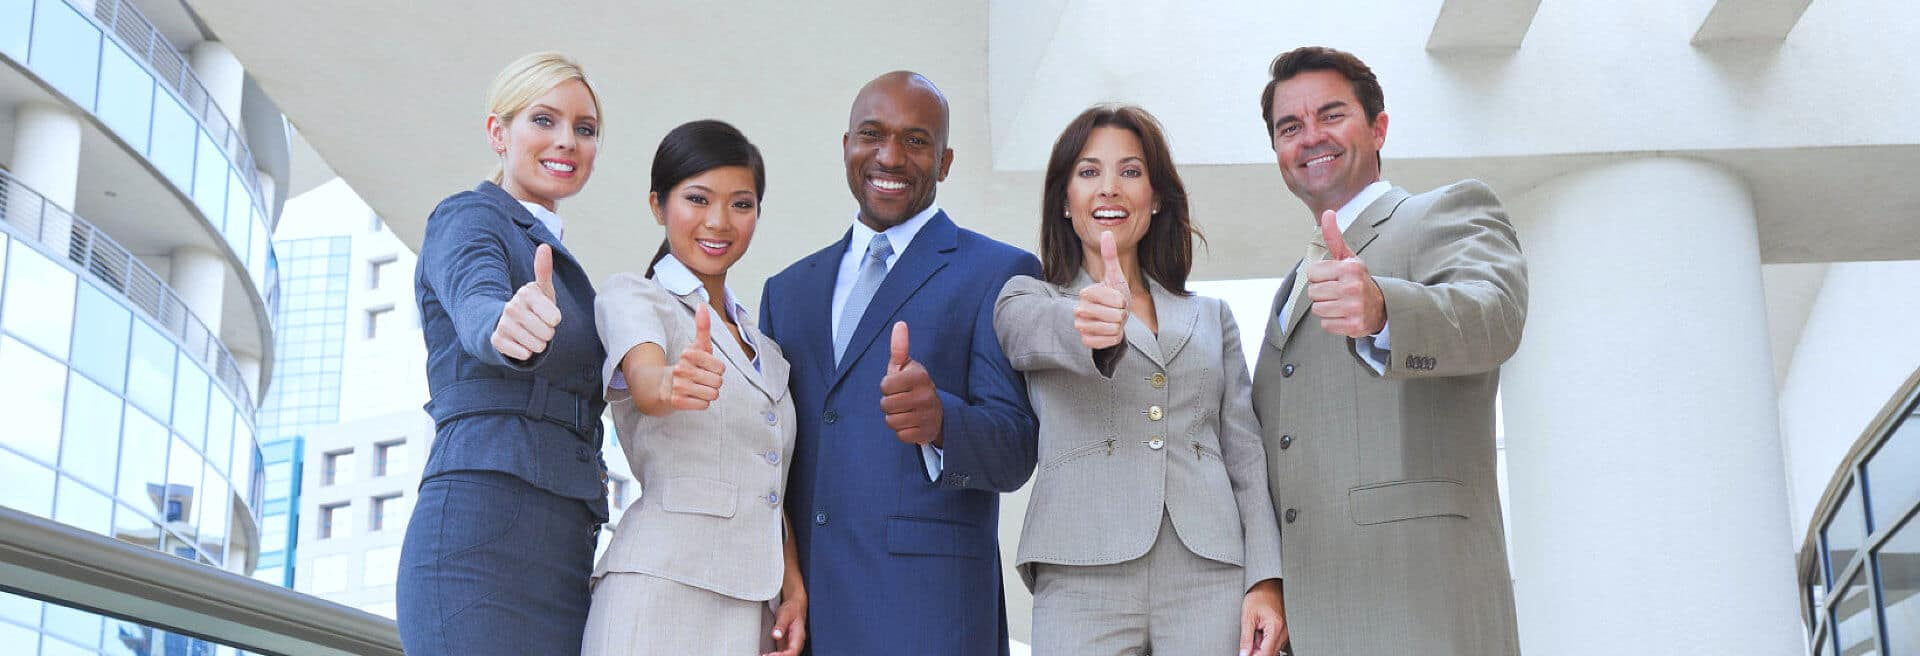 business people raising thumbs